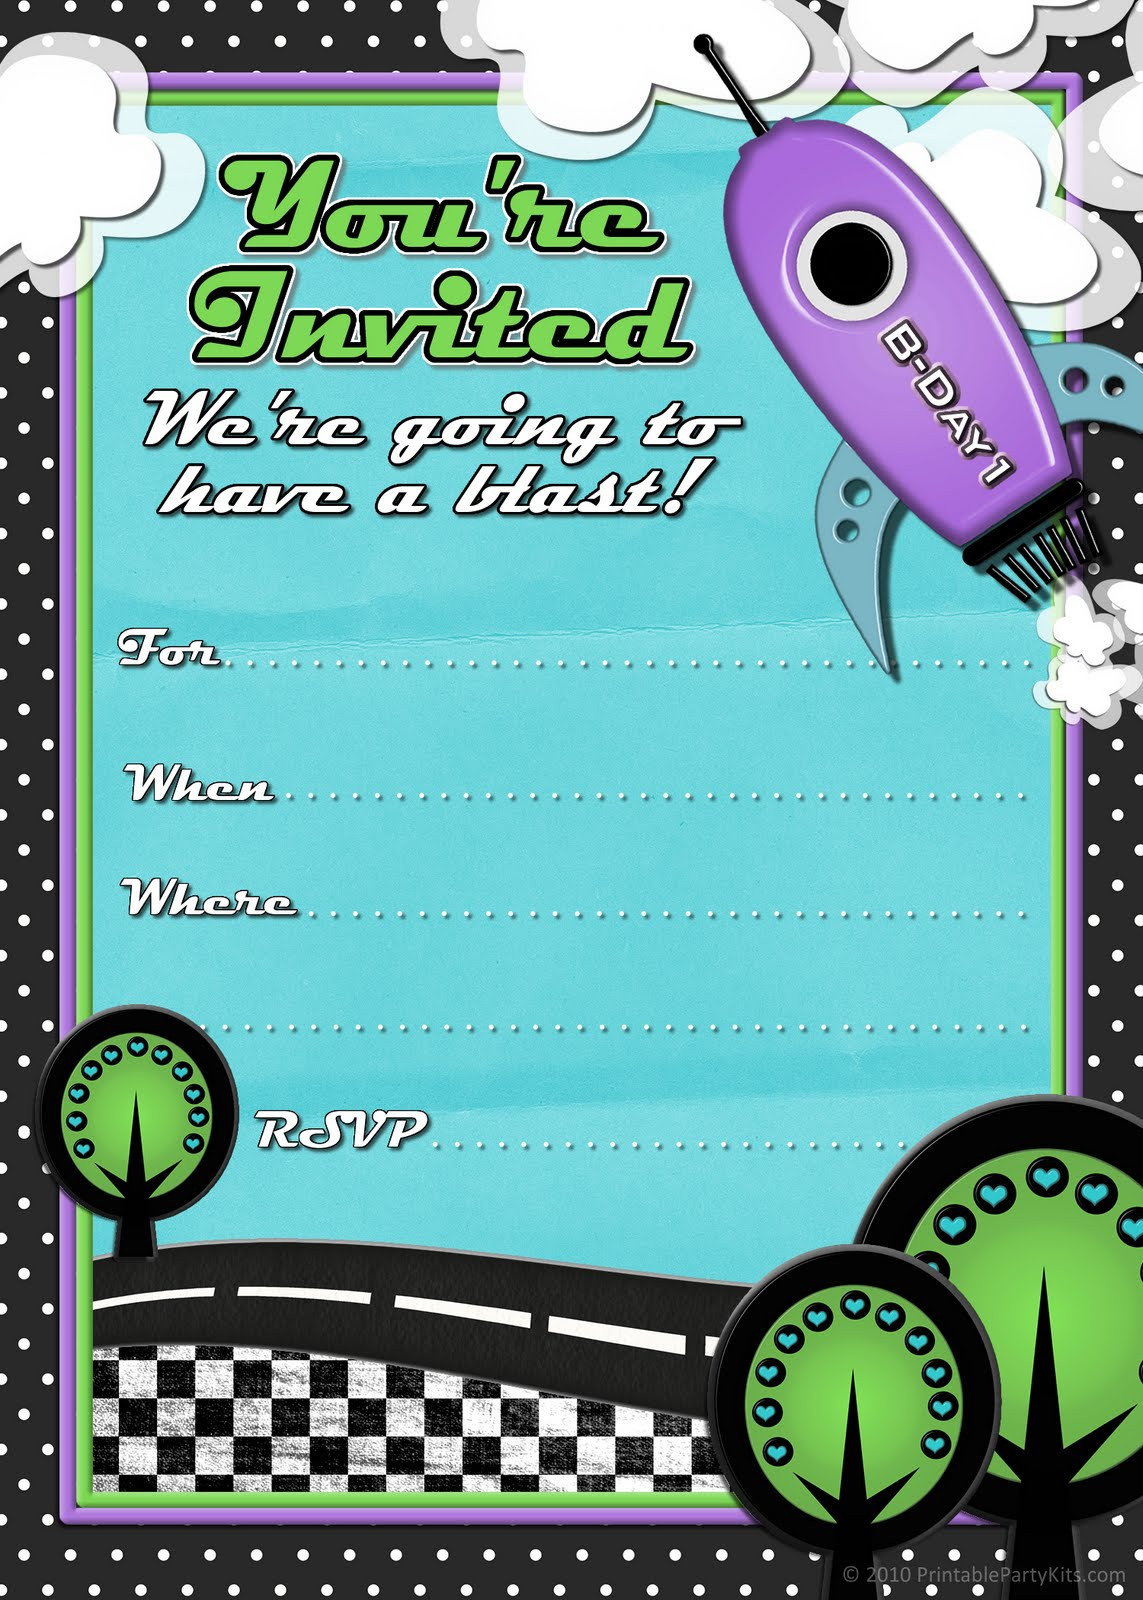 Best ideas about Birthday Party Templates . Save or Pin 41 Printable Birthday Party Cards & Invitations for Kids Now.